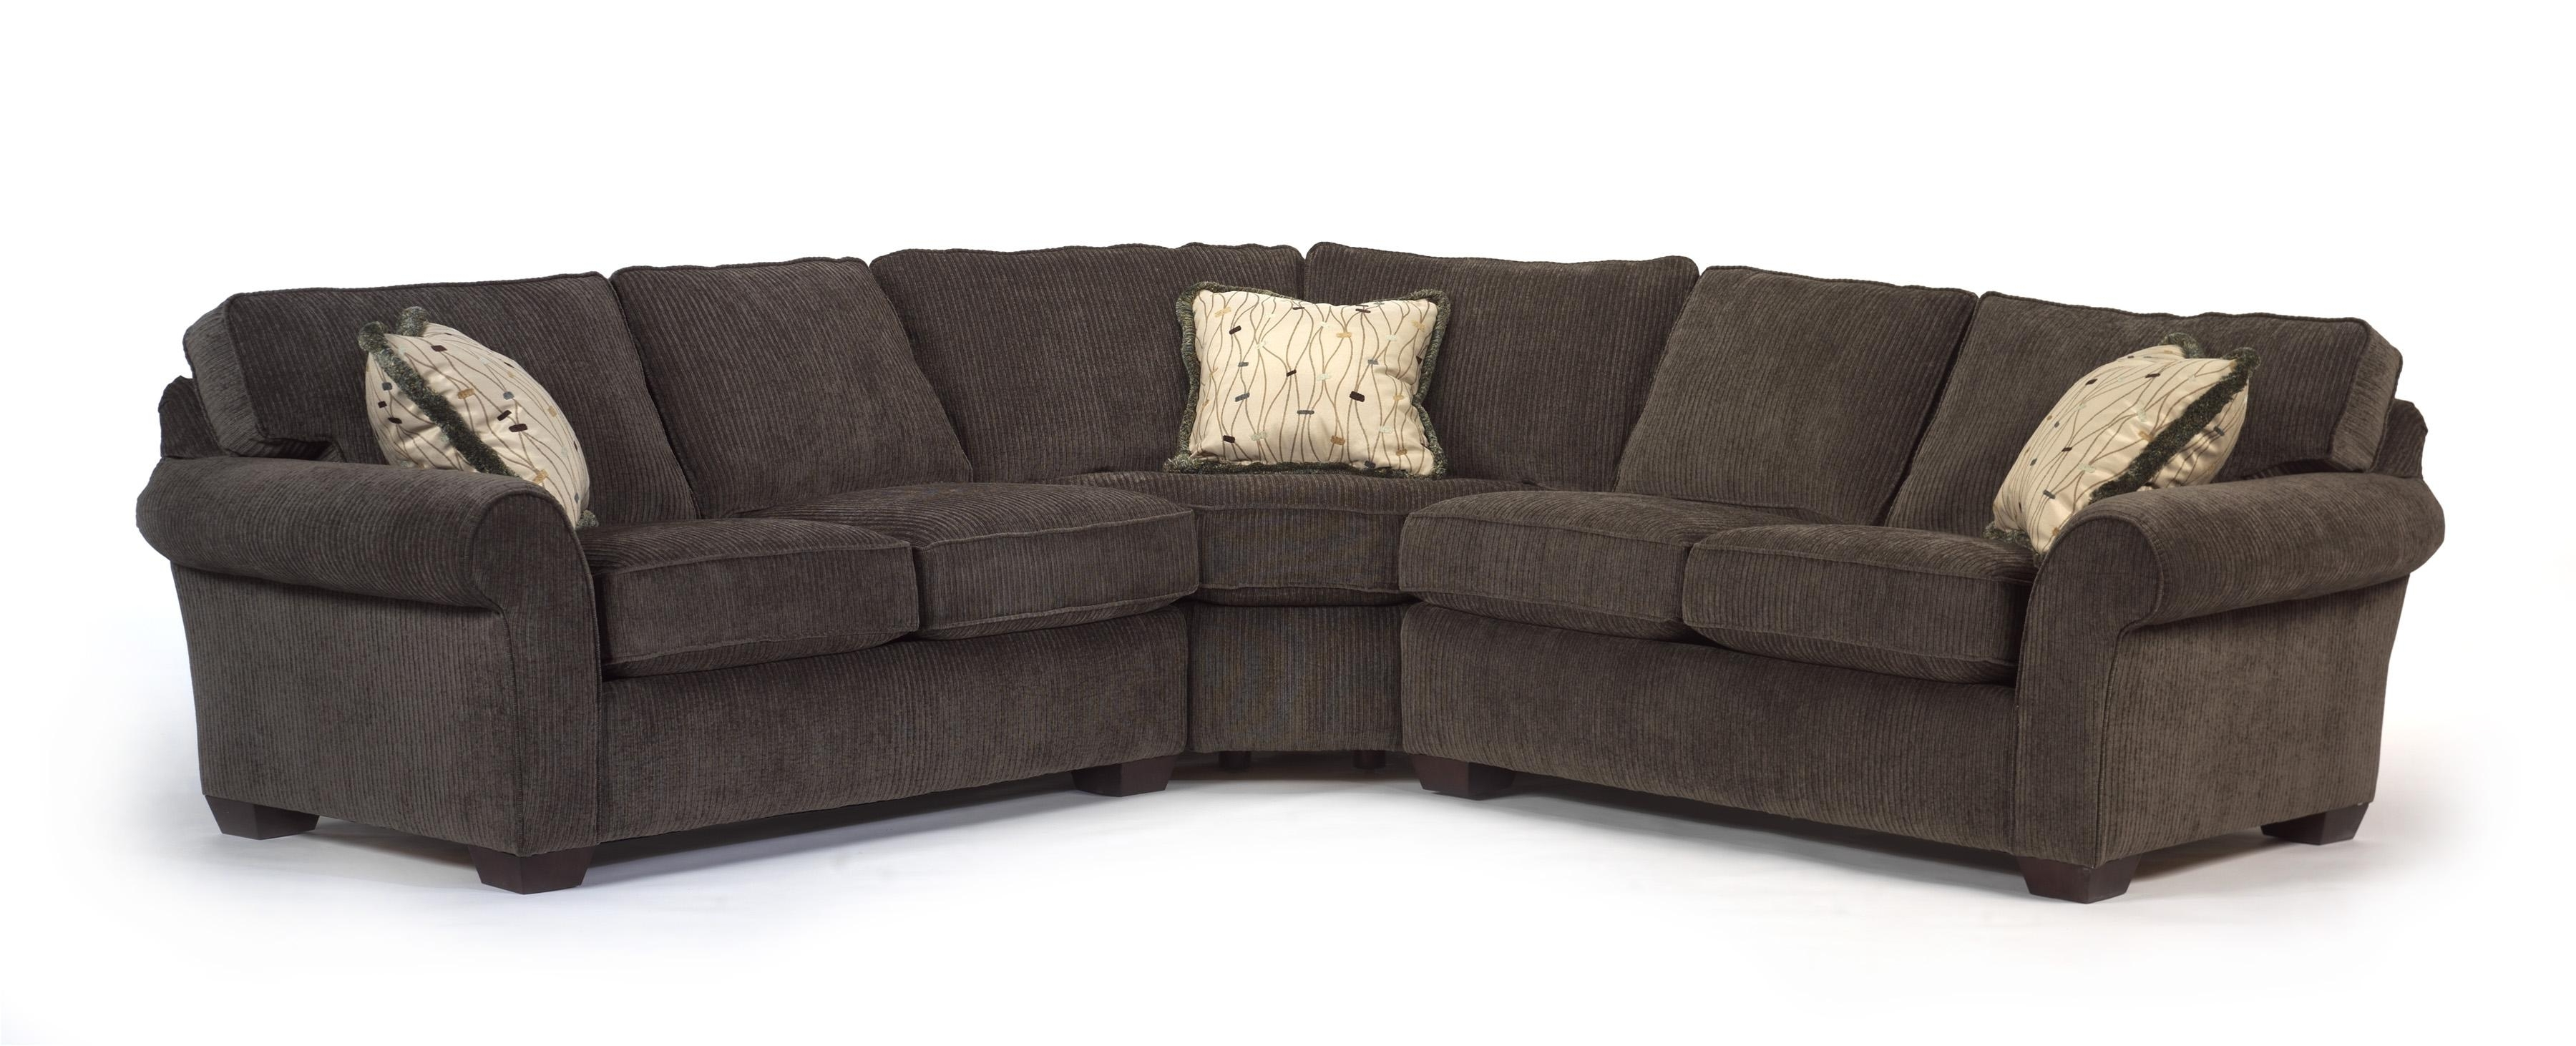 Most Up To Date Flexsteel Vail Corner Sectional Sofa – Ahfa – Sofa Sectional For Wichita Ks Sectional Sofas (View 9 of 15)